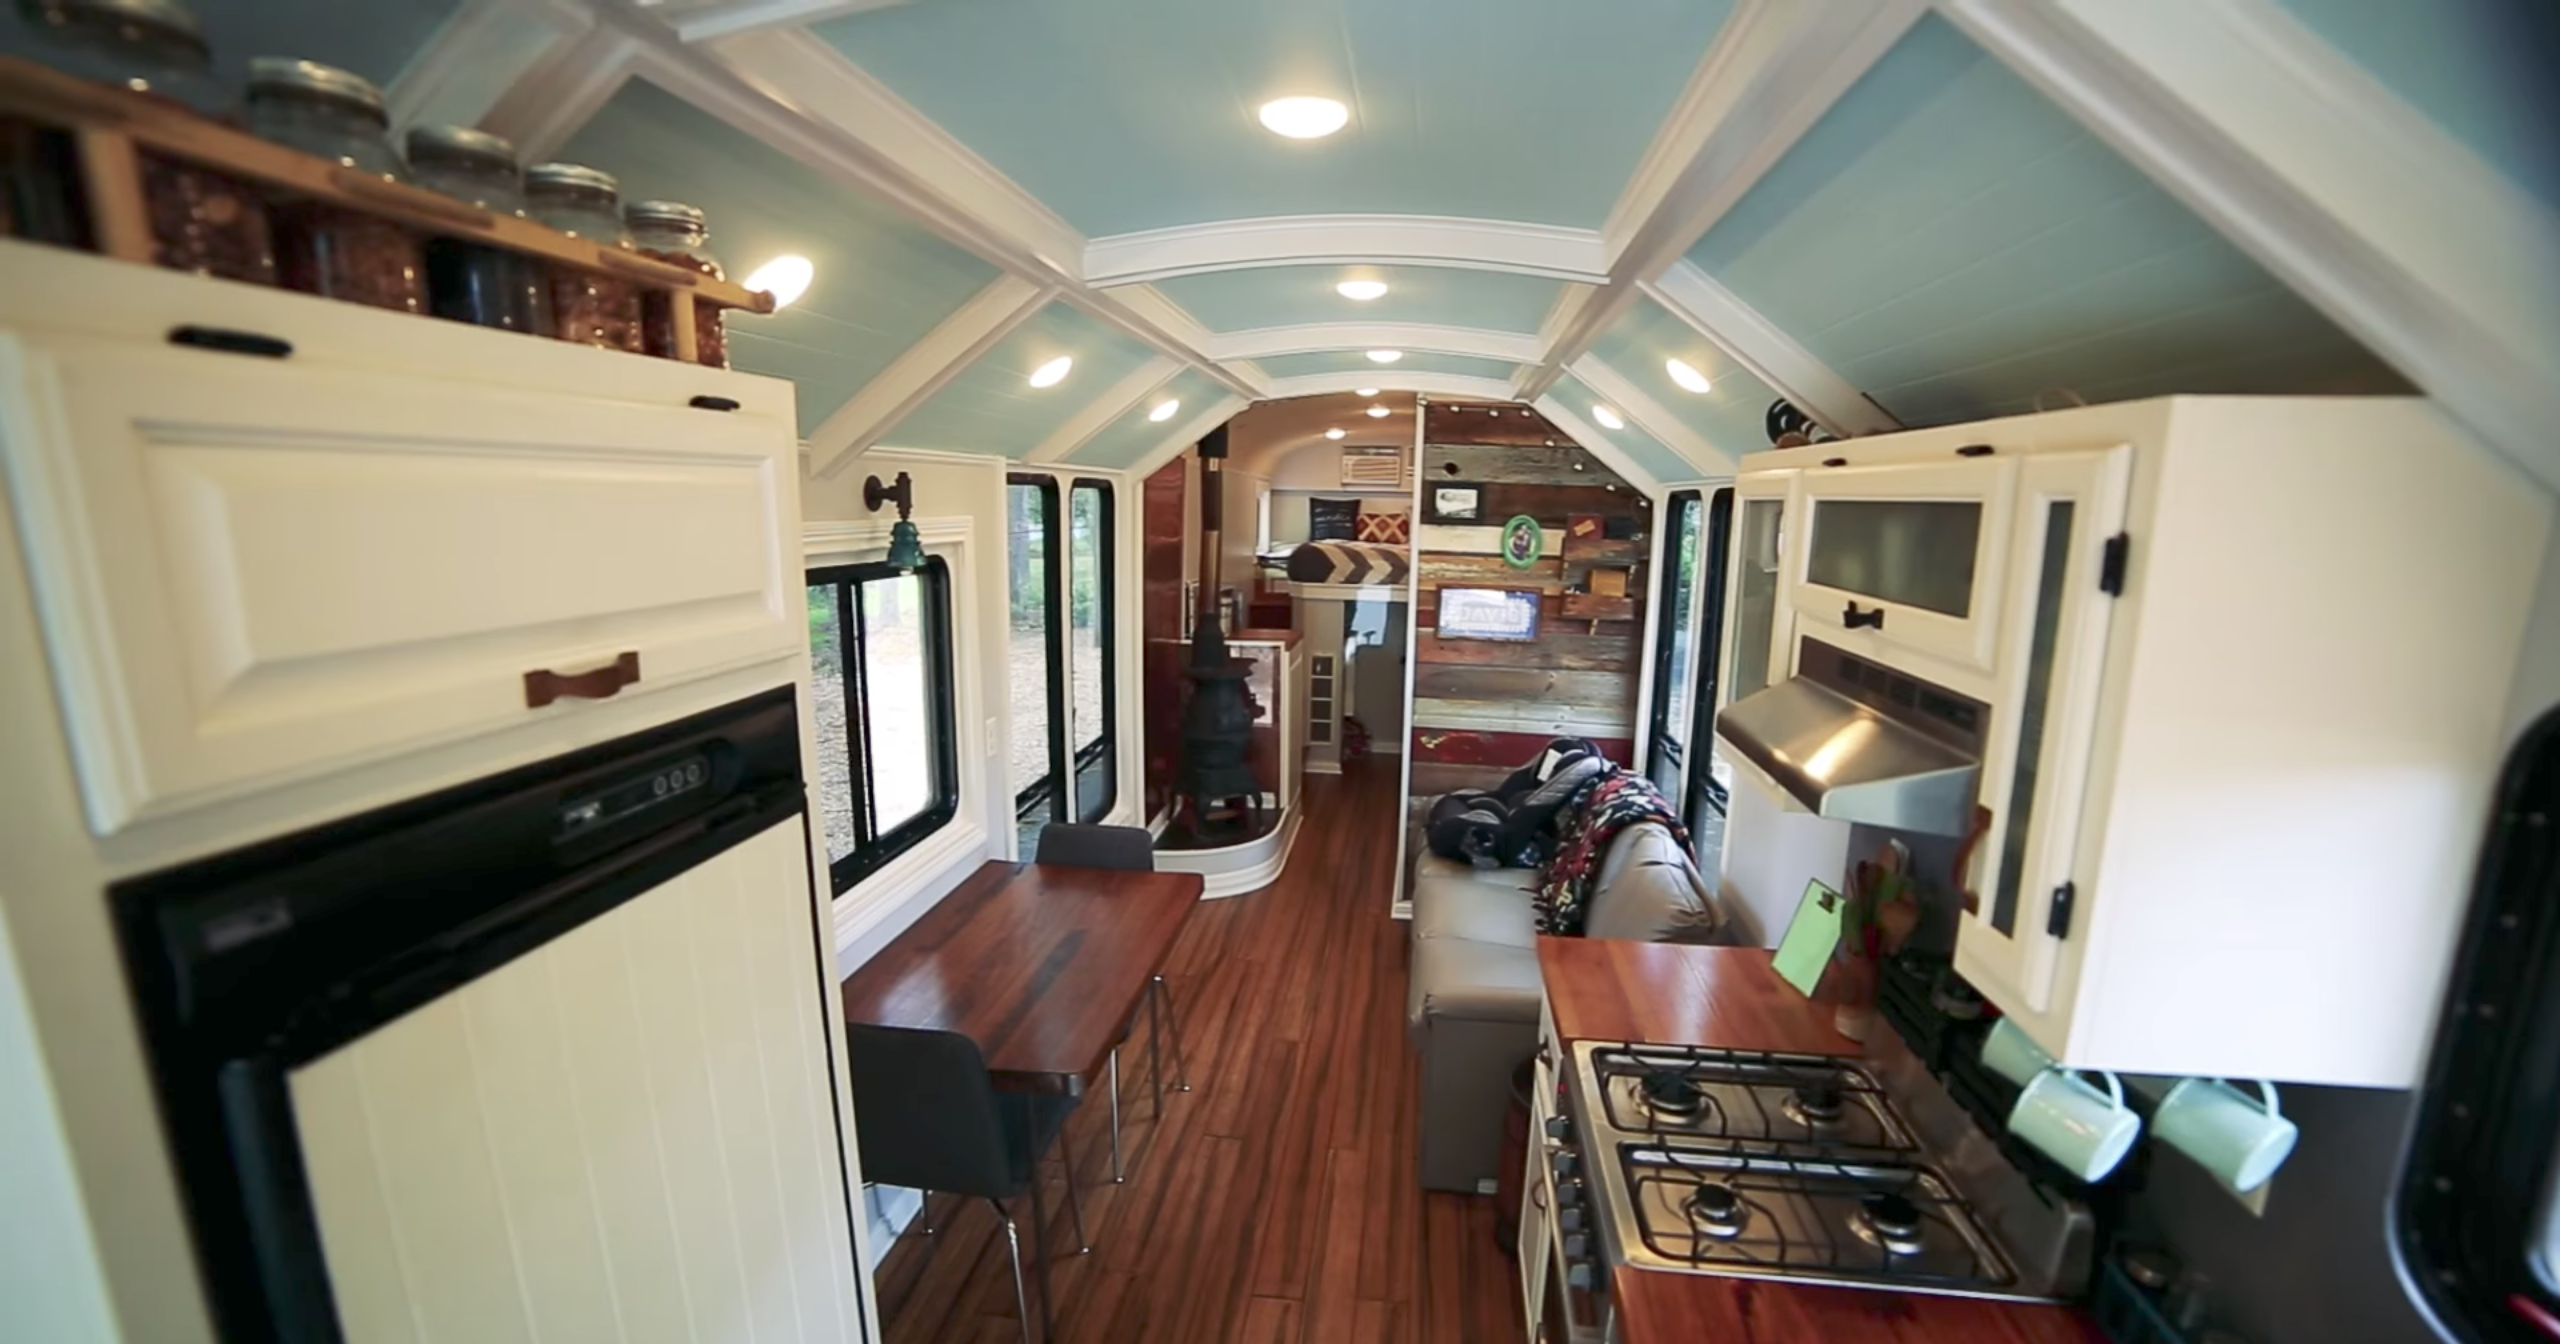 This school bus conversion may be the most impressive one yet - Curbed